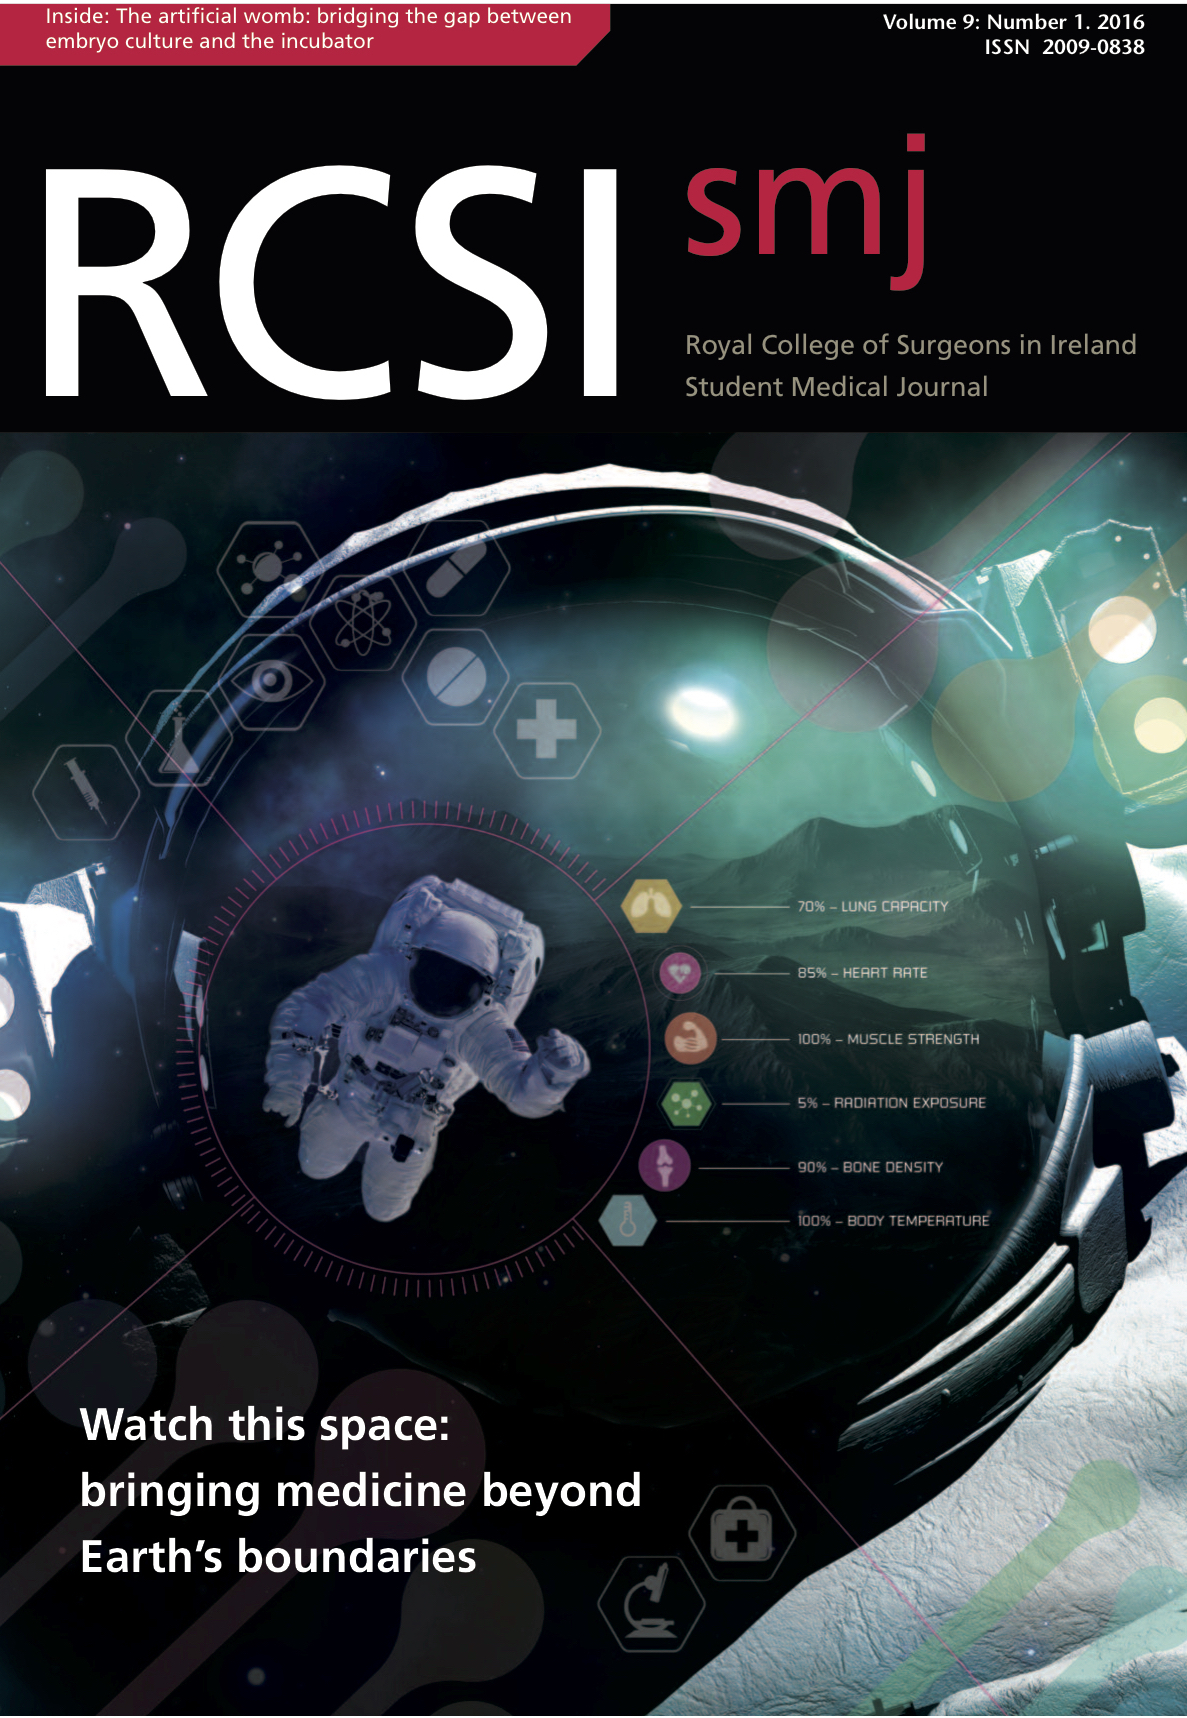 RCSIsmj Vol 9 Cover